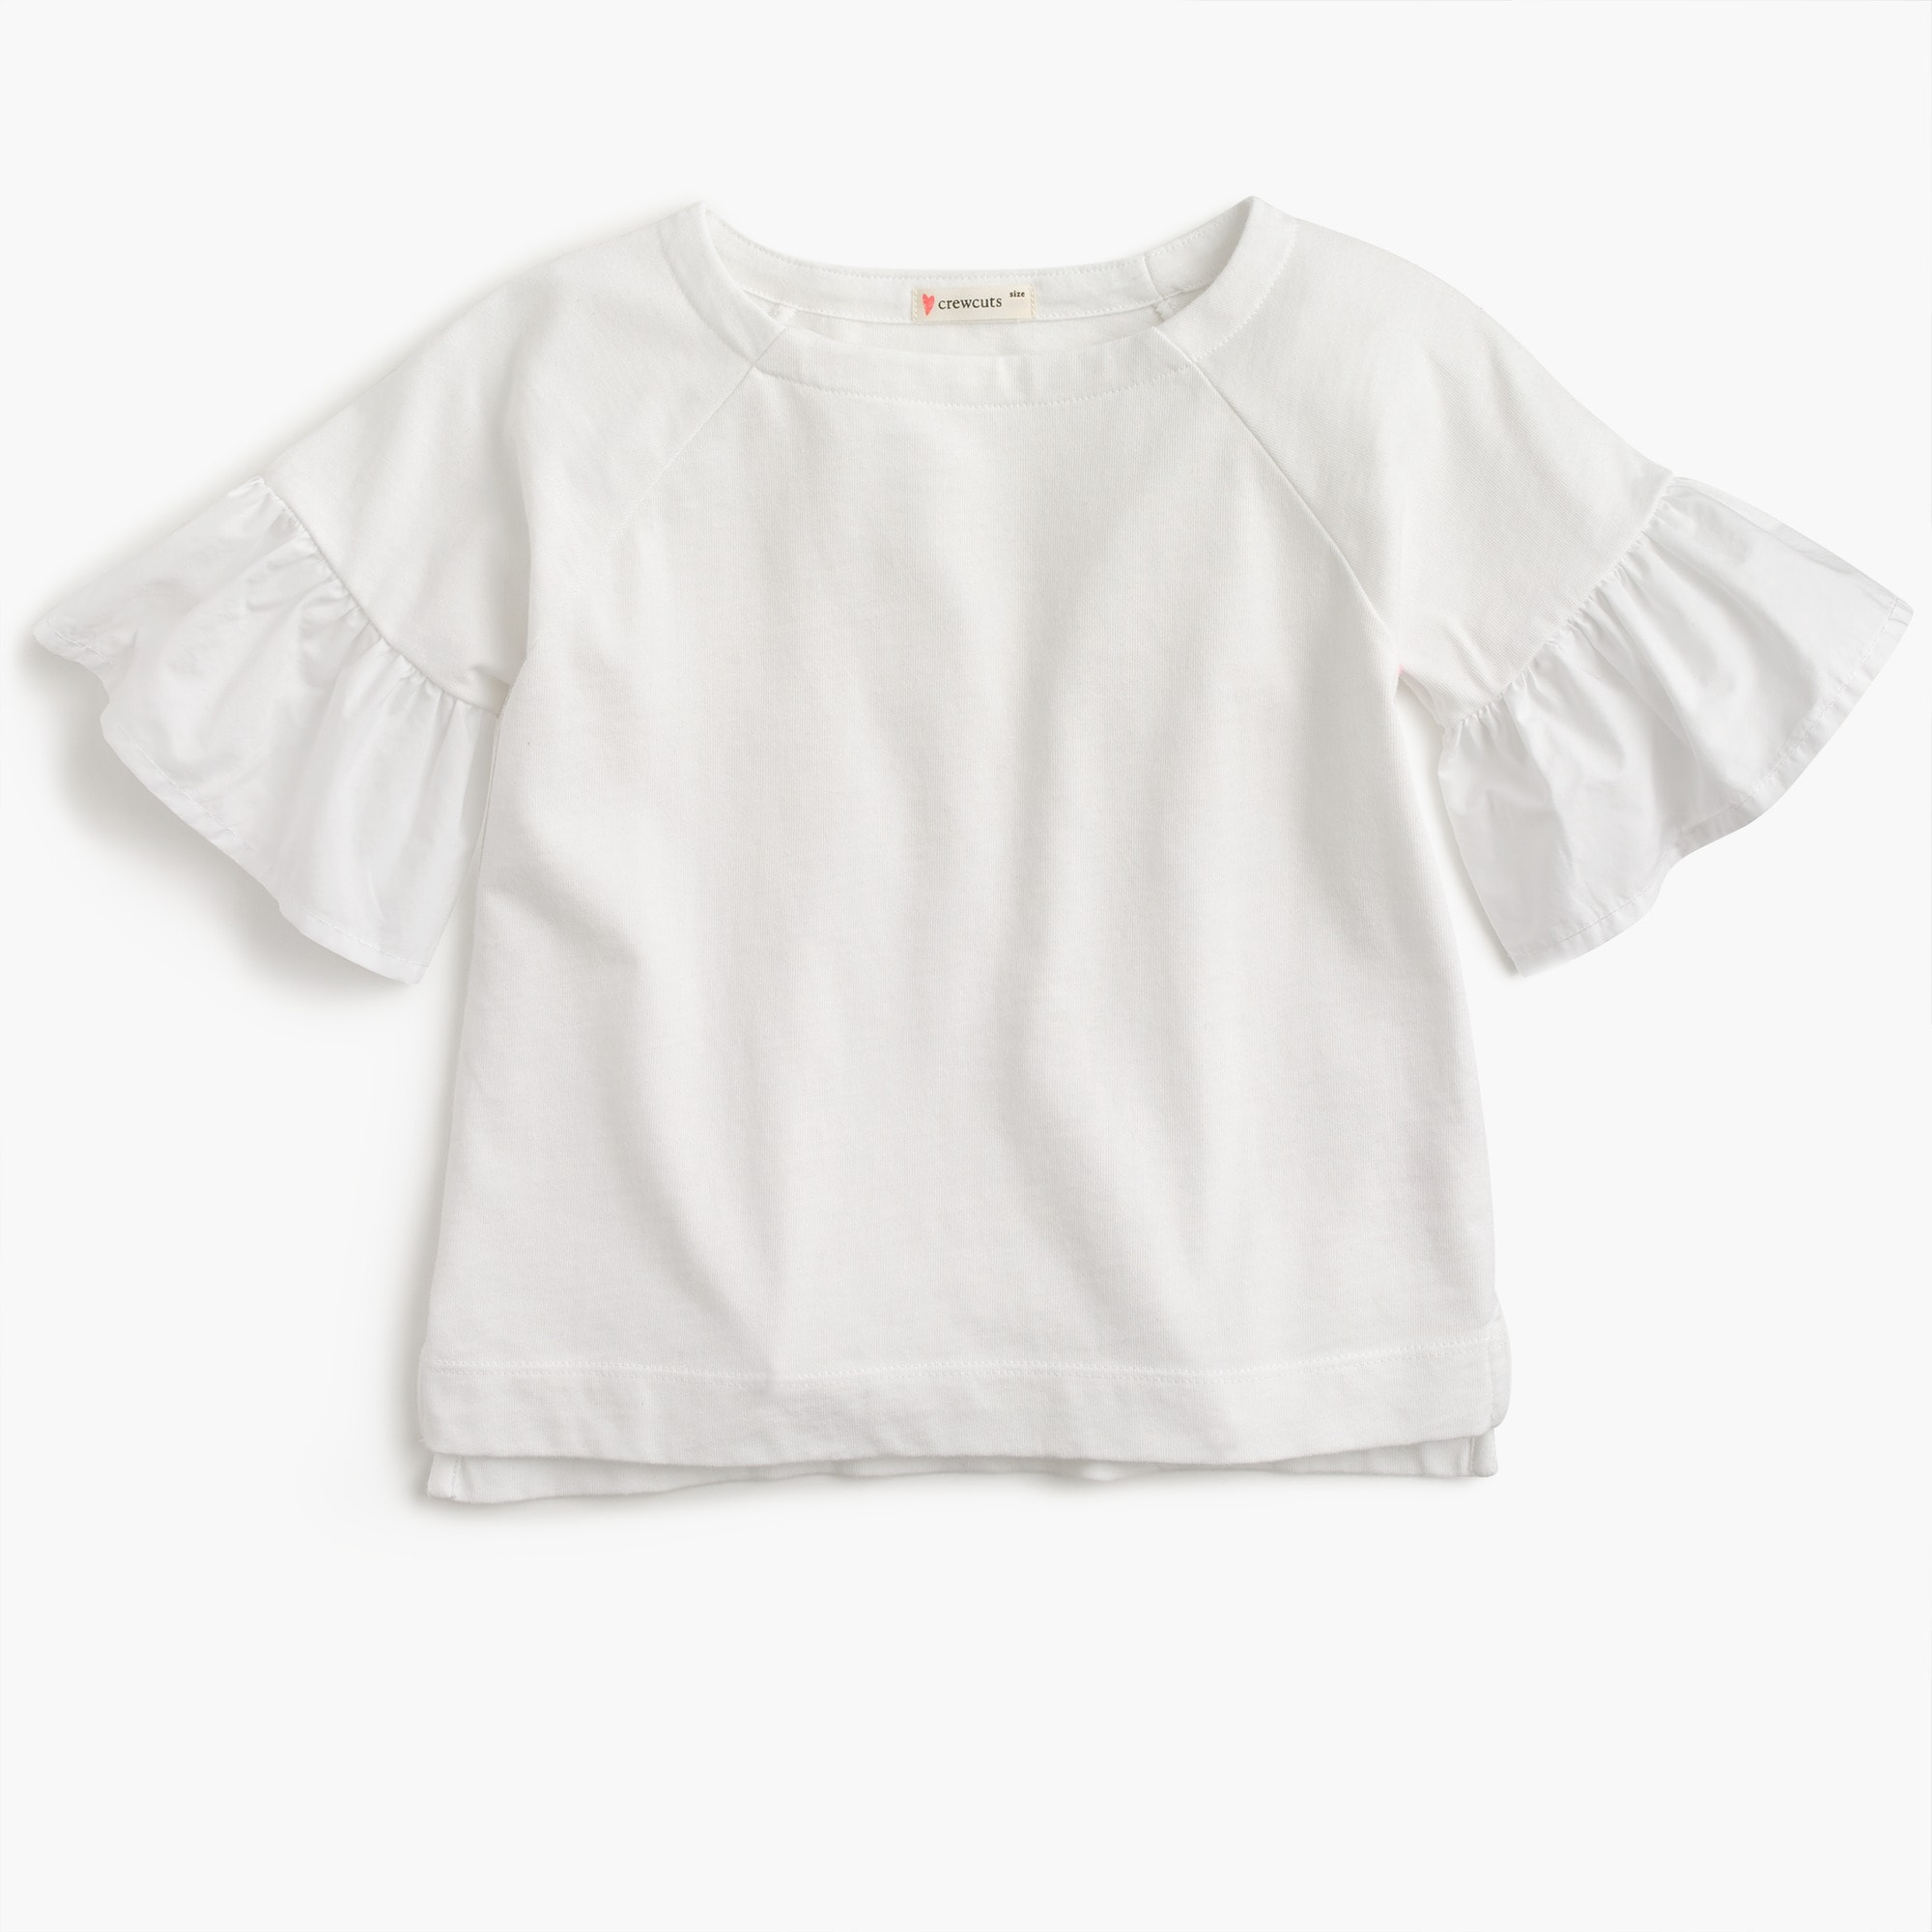 flutter-sleeve top : girls' tees & tanks